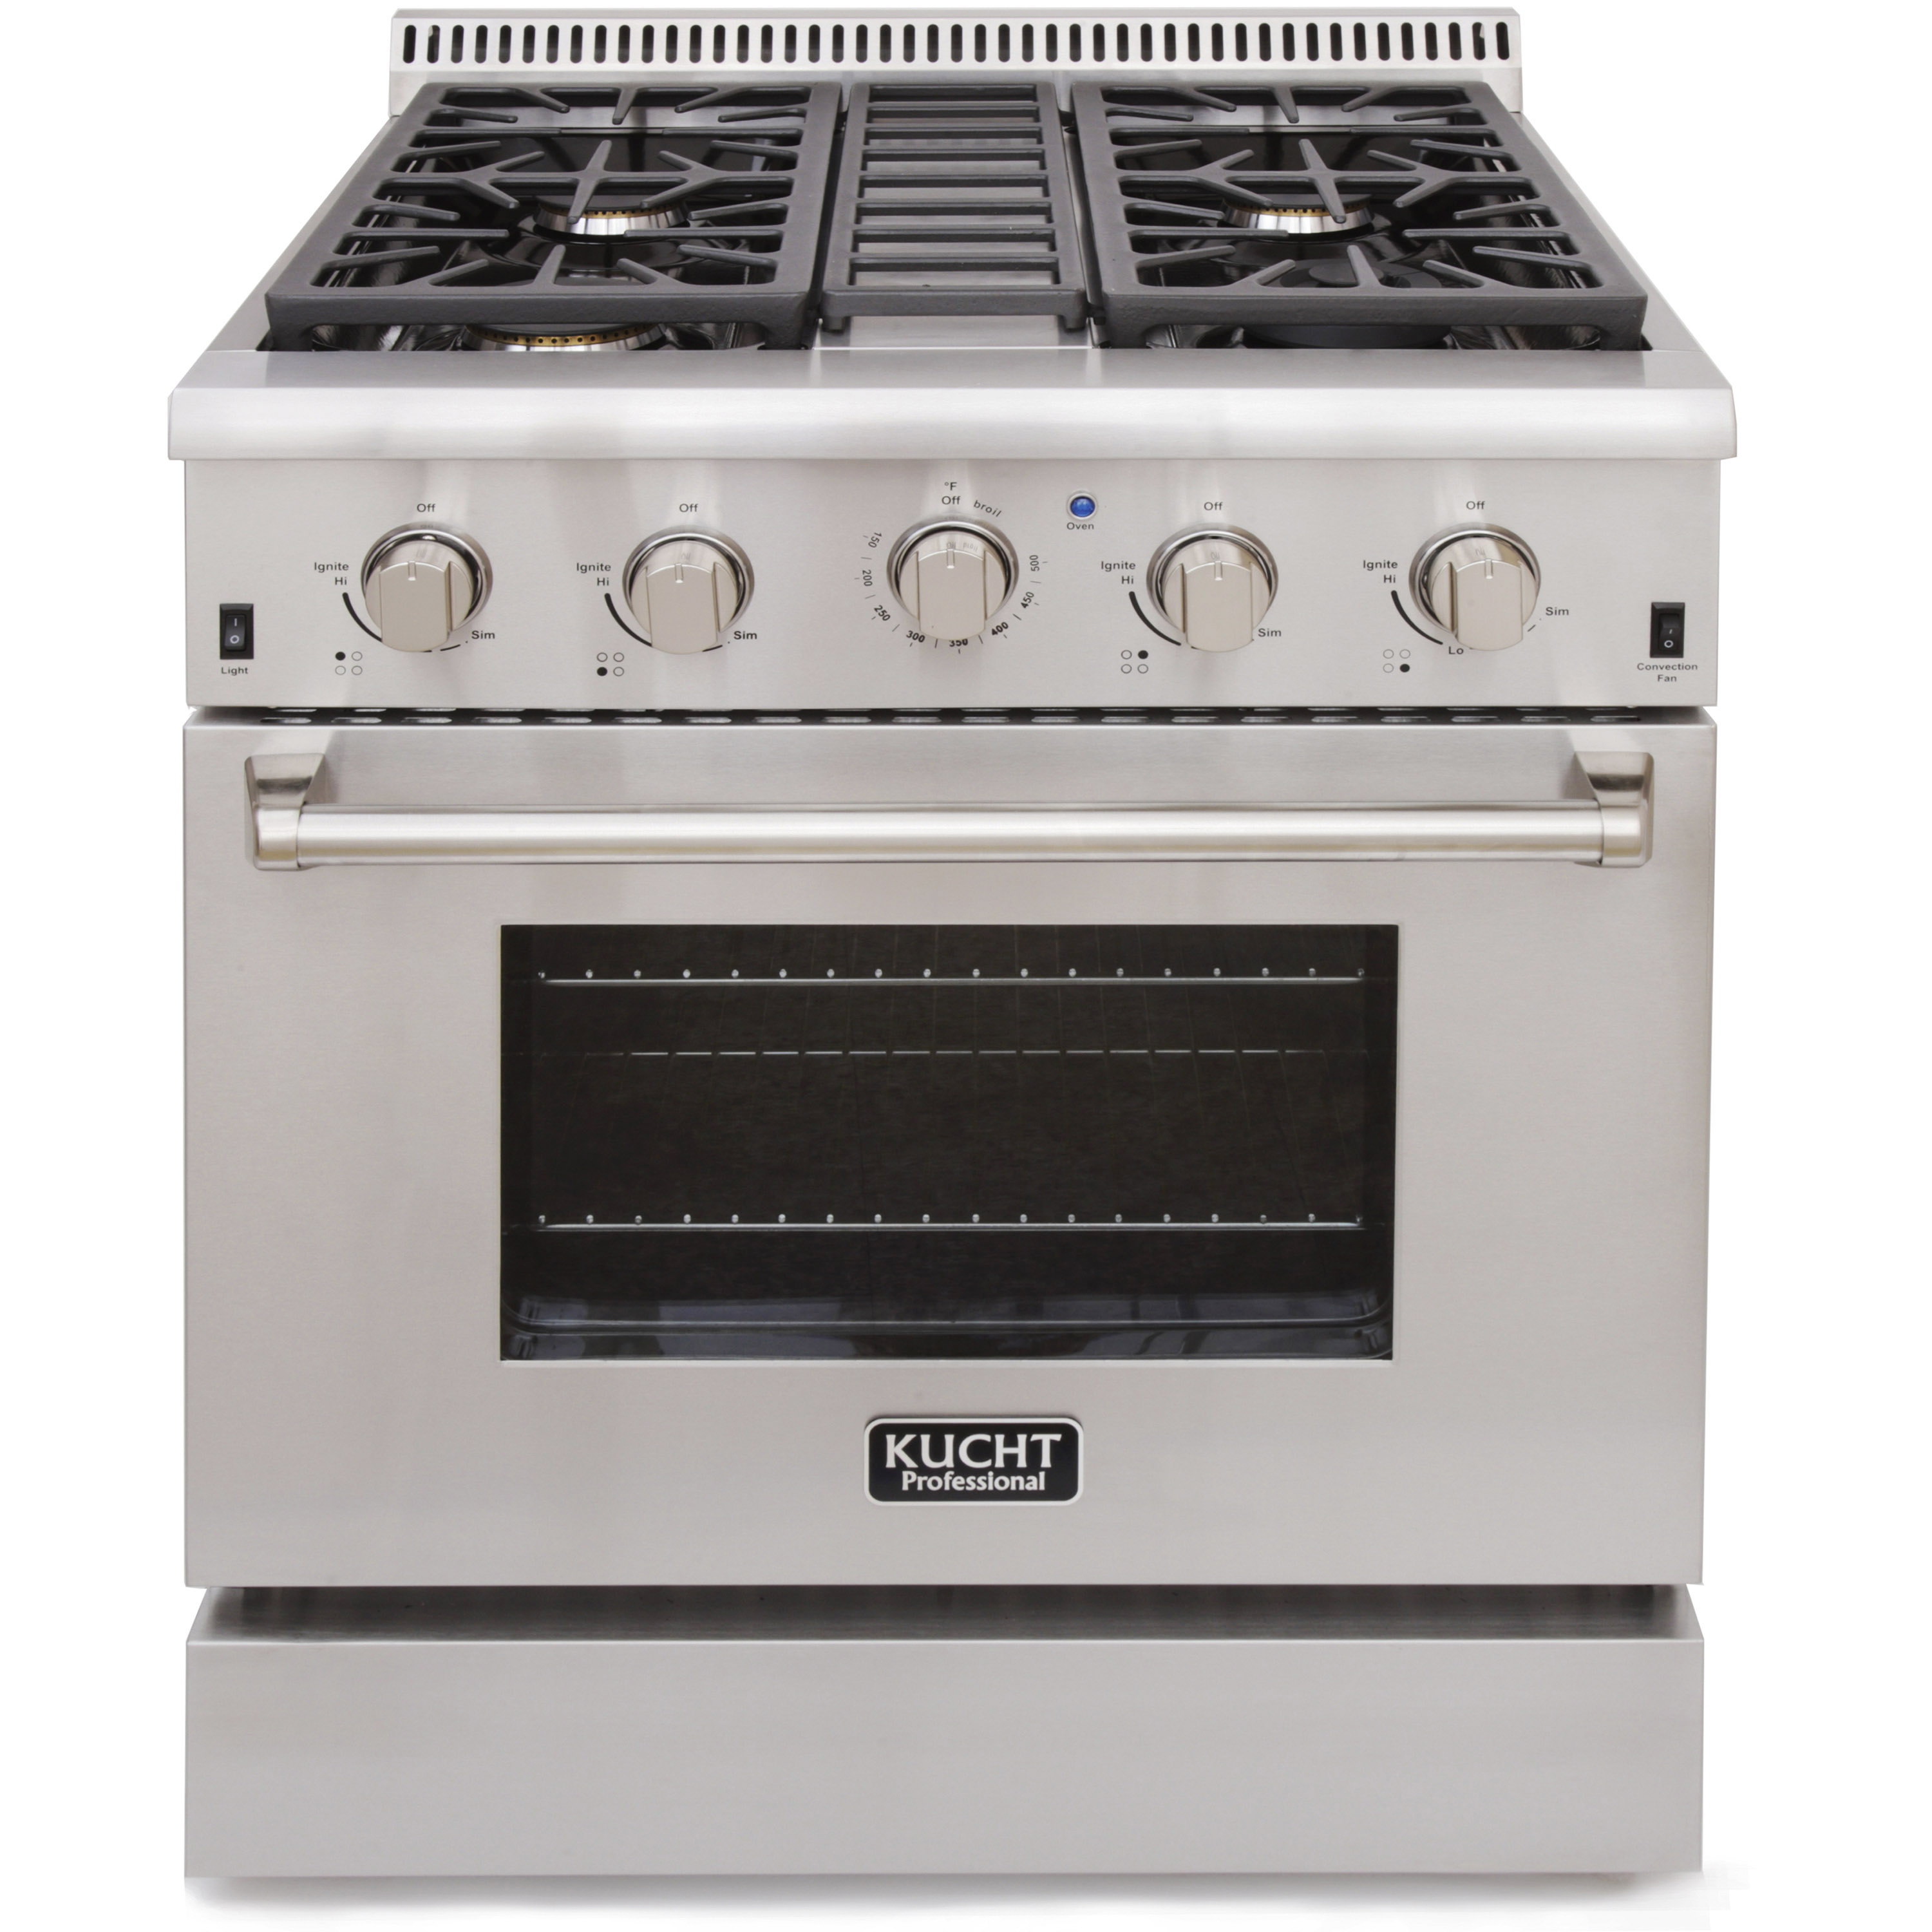 KUCHT Professional 30 in. 4.2 cu. ft. Natural Gas Range with Sealed Burners and Convection Oven in Stainless... by KUCHT